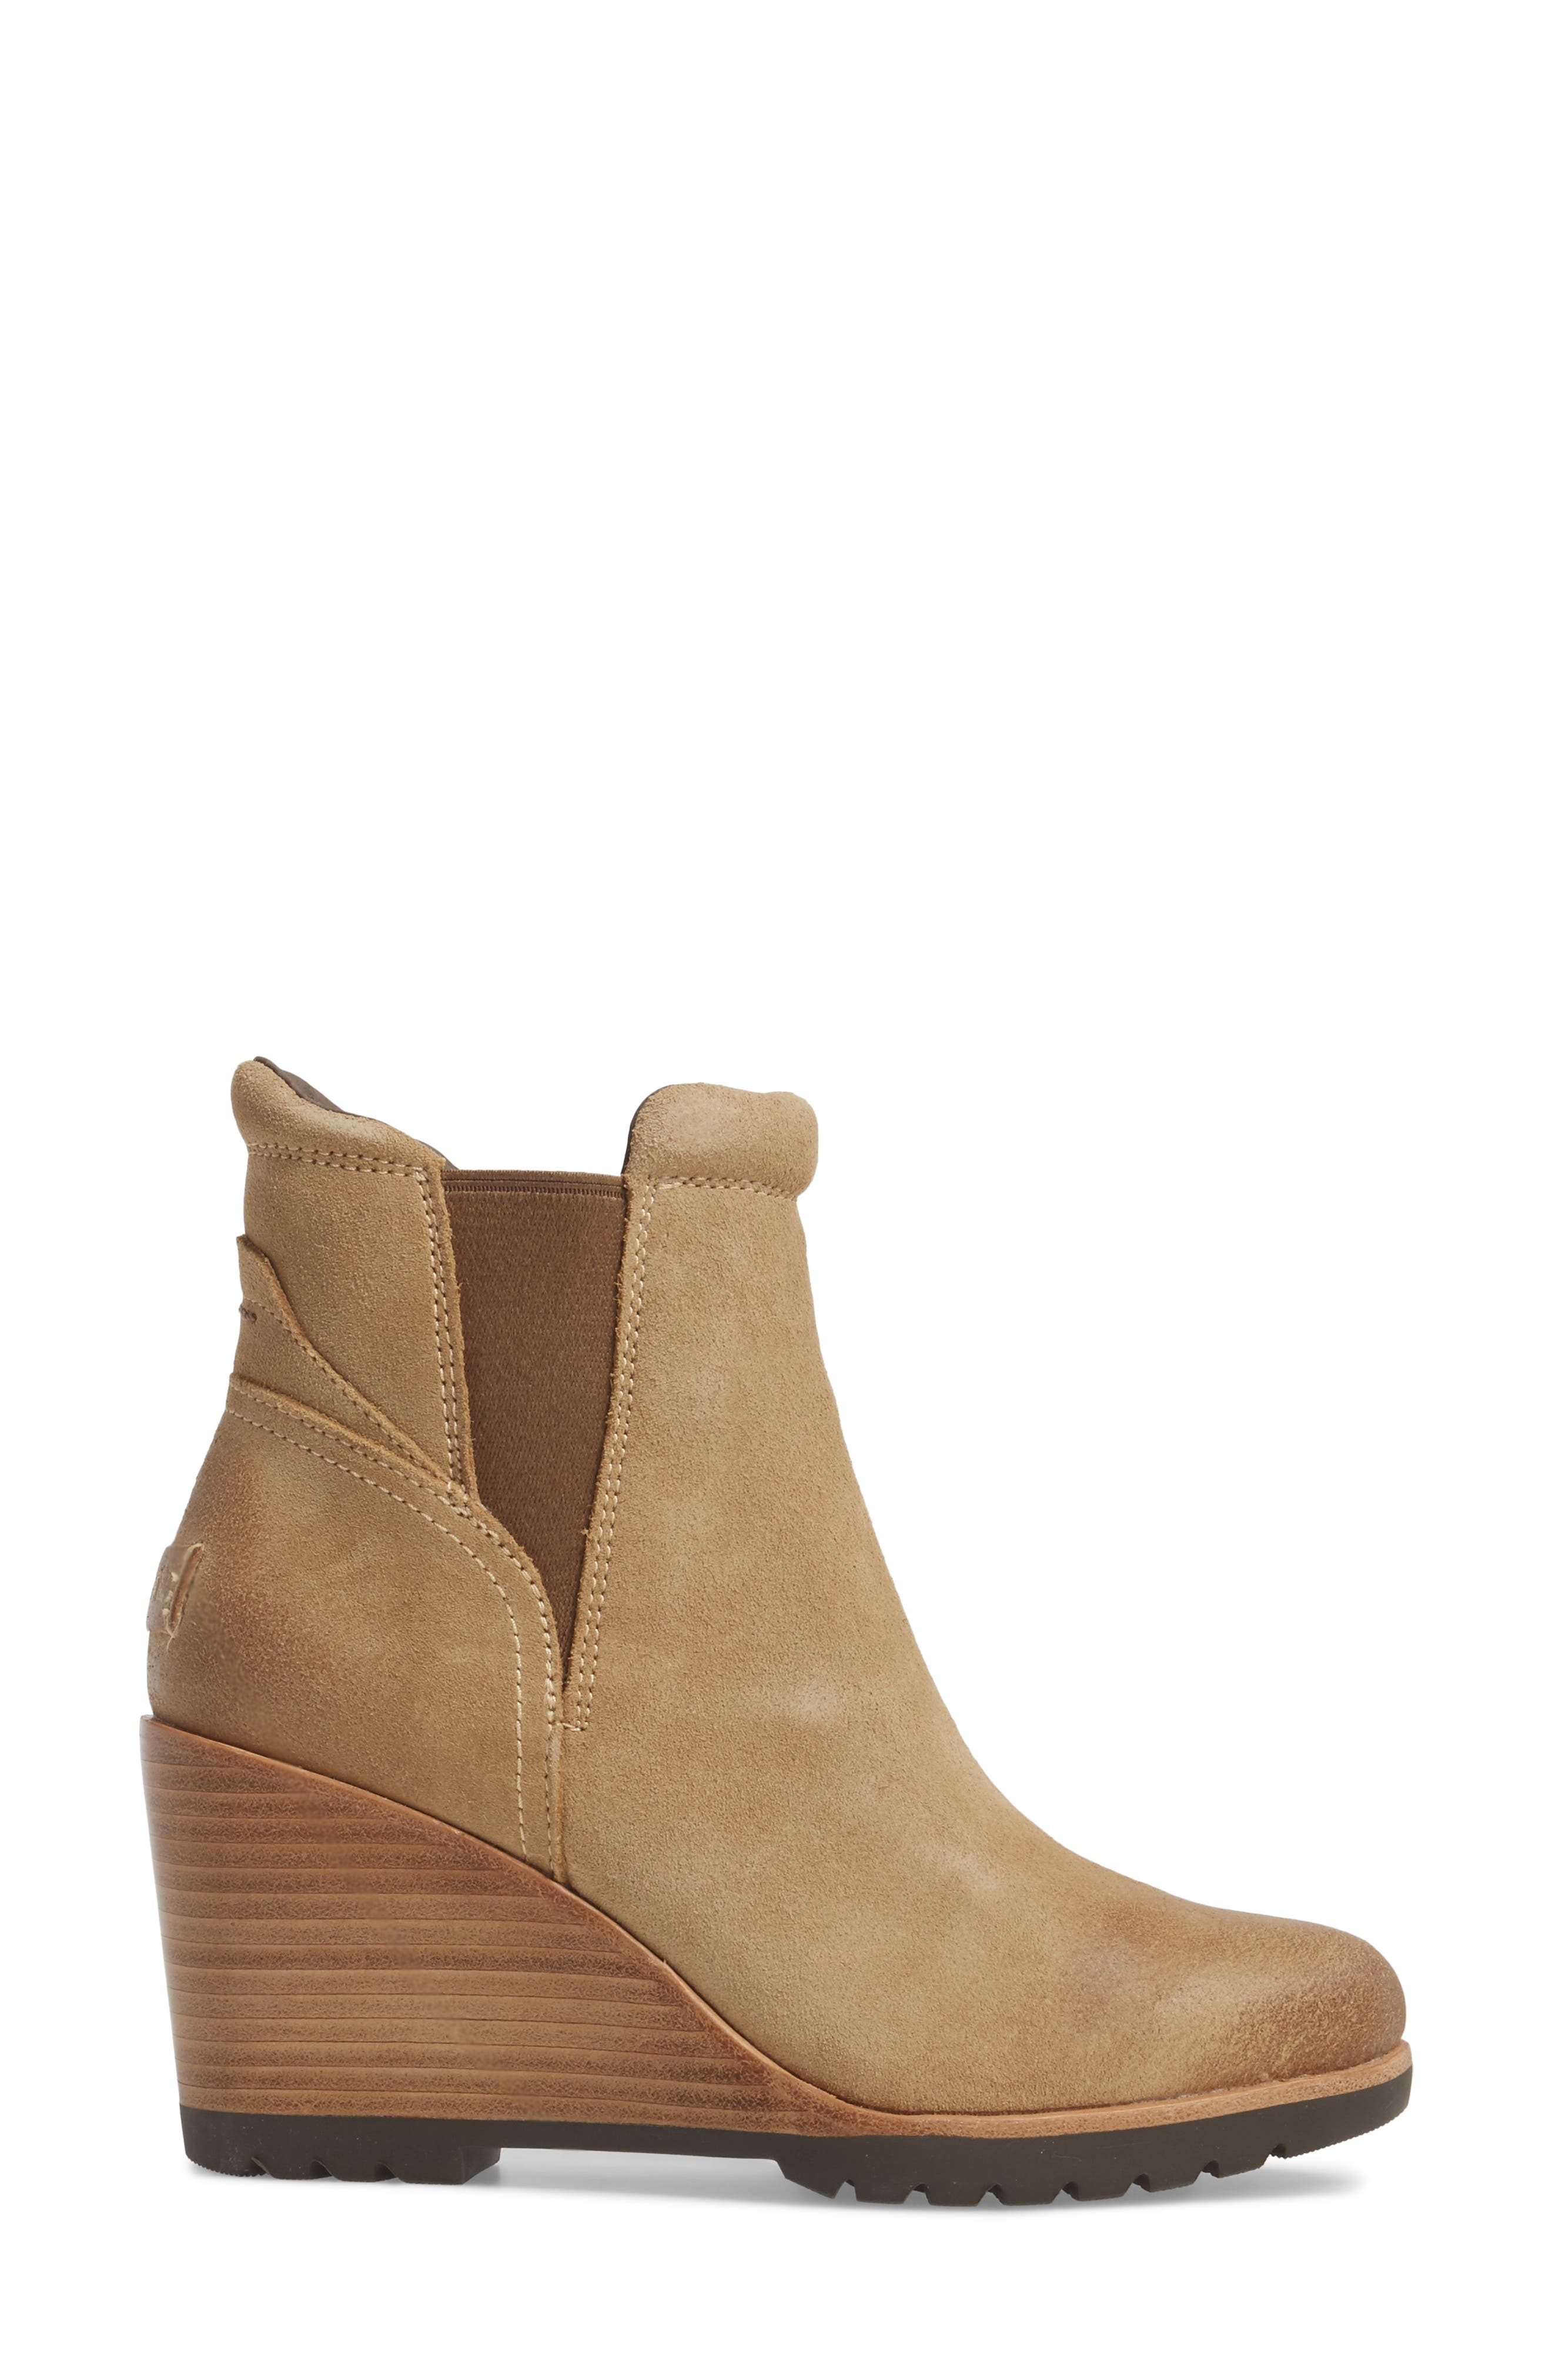 After Hours Chelsea Boot,                             Alternate thumbnail 14, color,